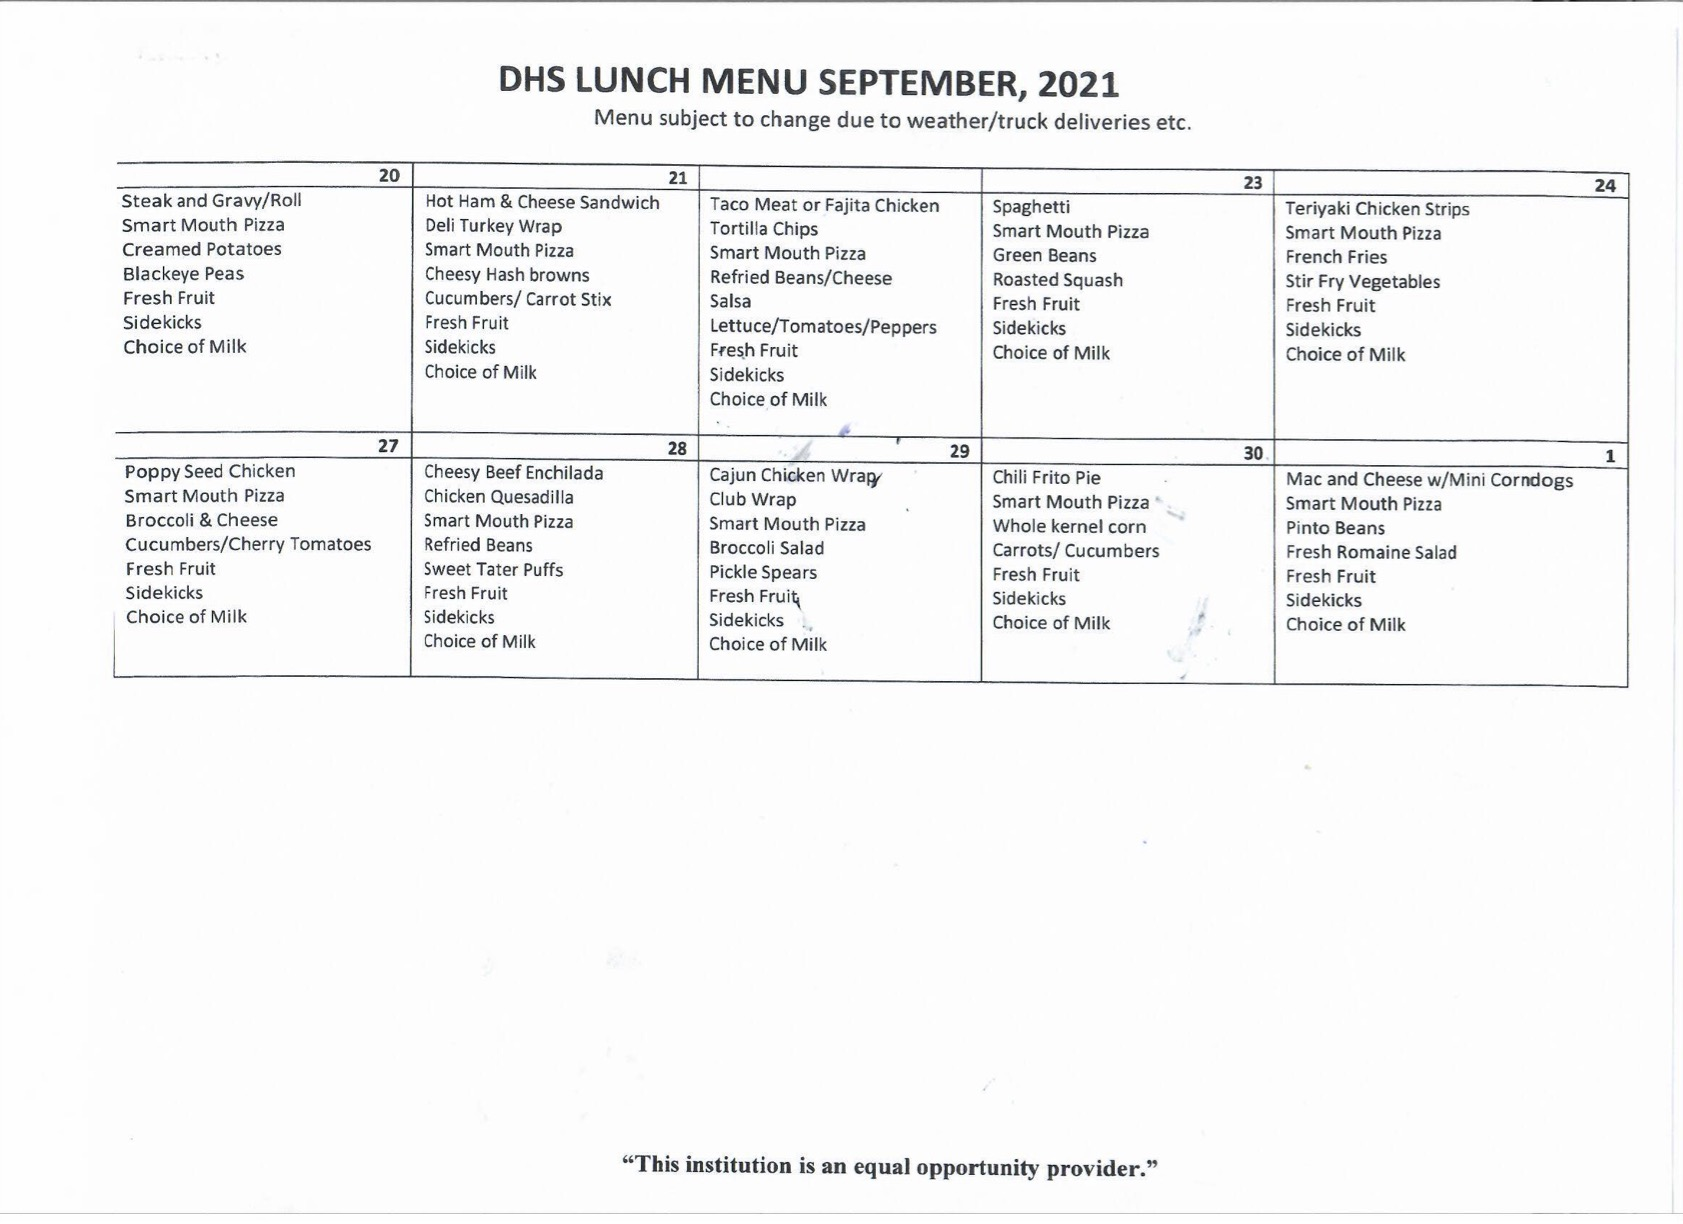 DHS Lunch Menu Page 2